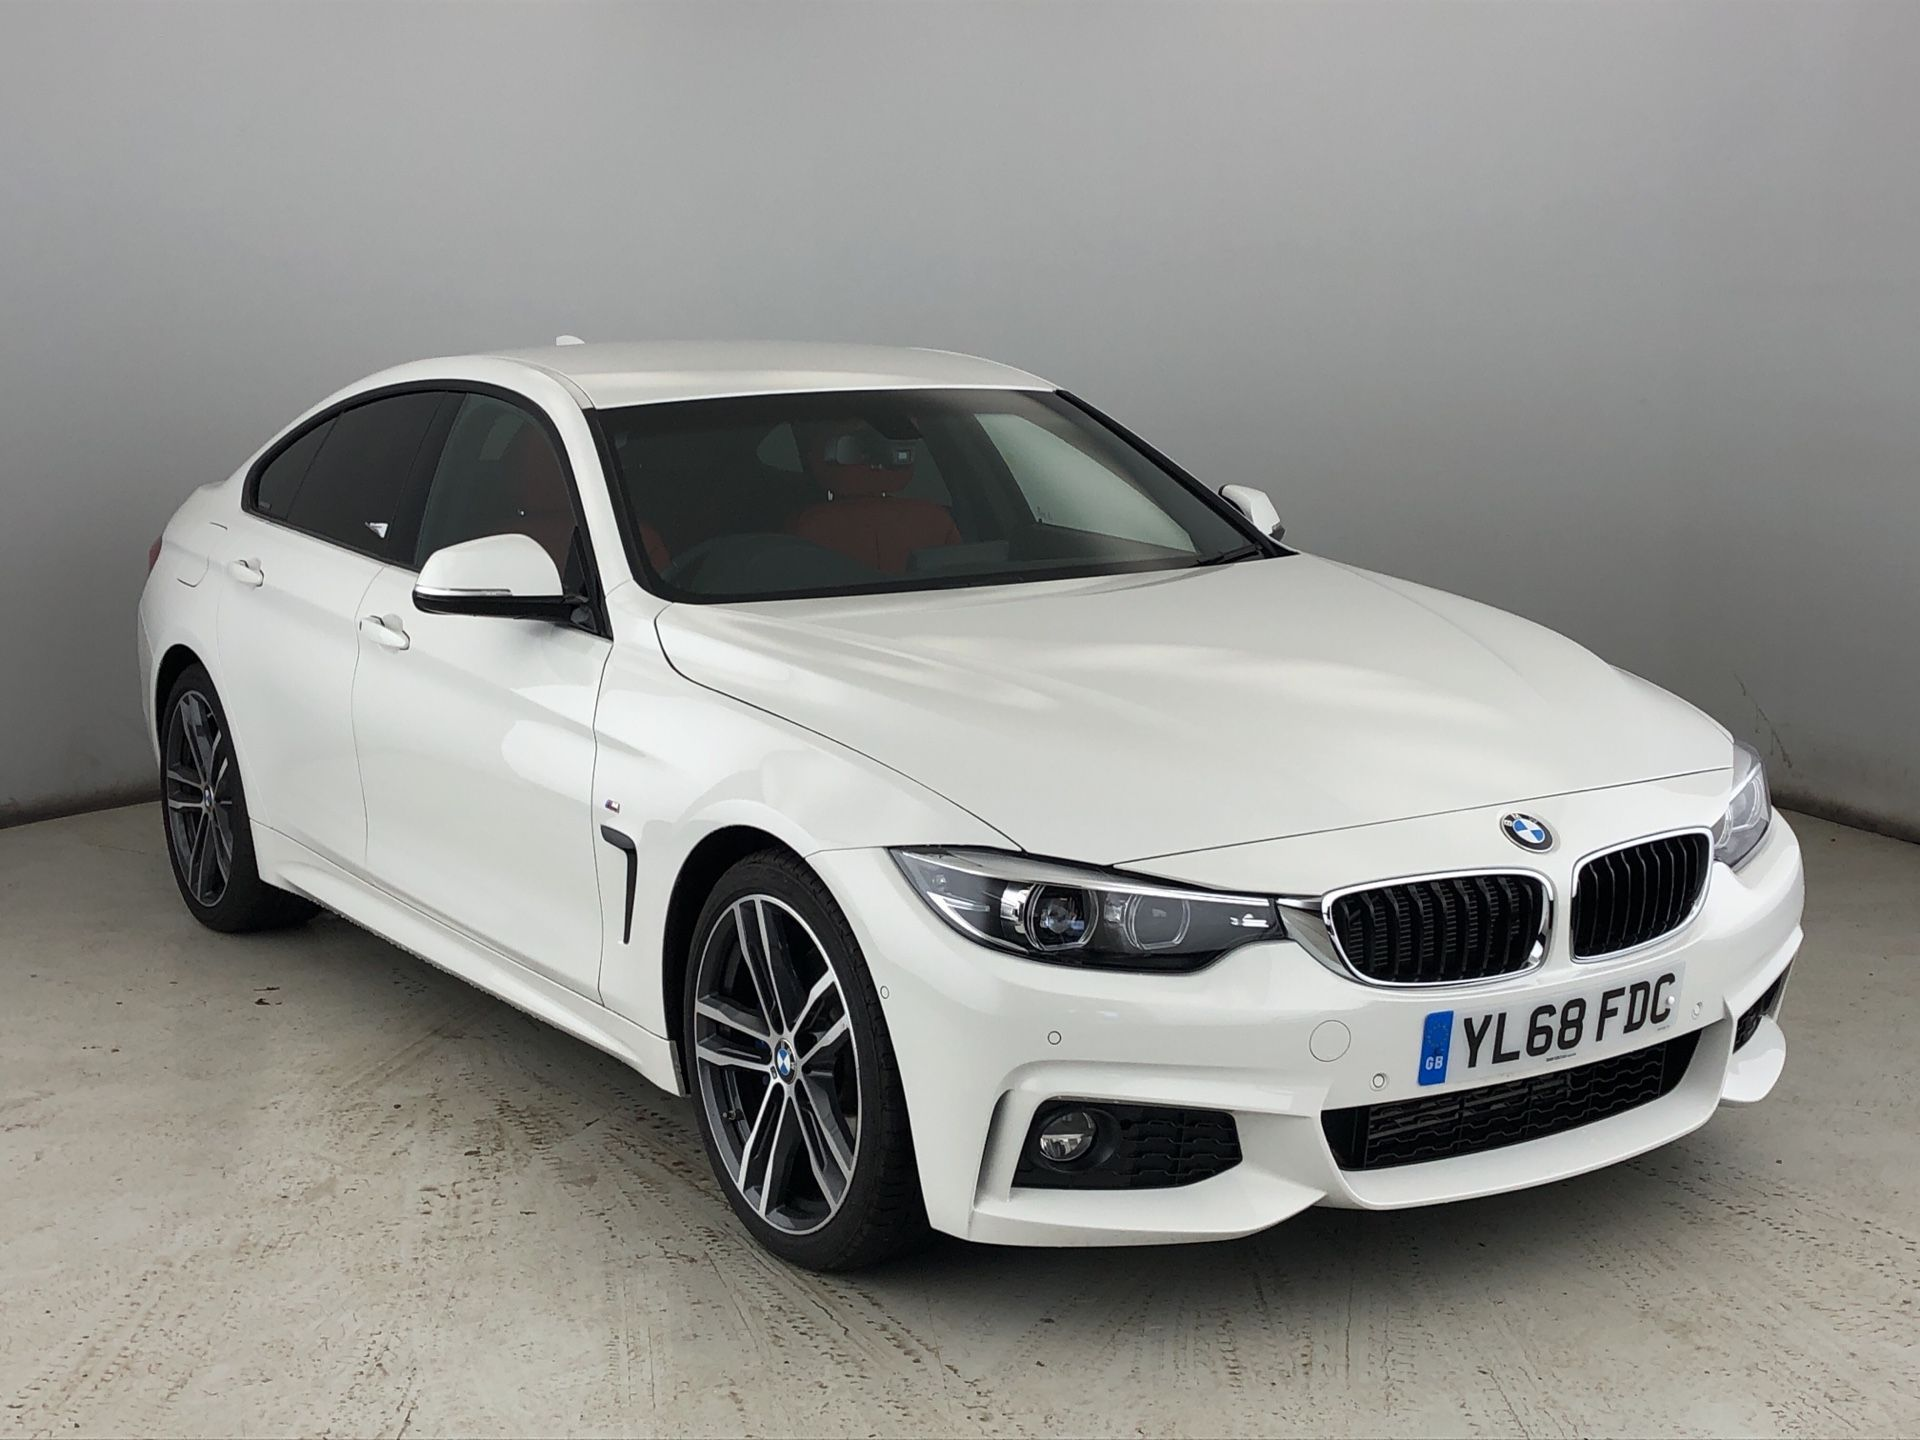 Image 1 - BMW 420d M Sport Gran Coupe (YL68FDC)